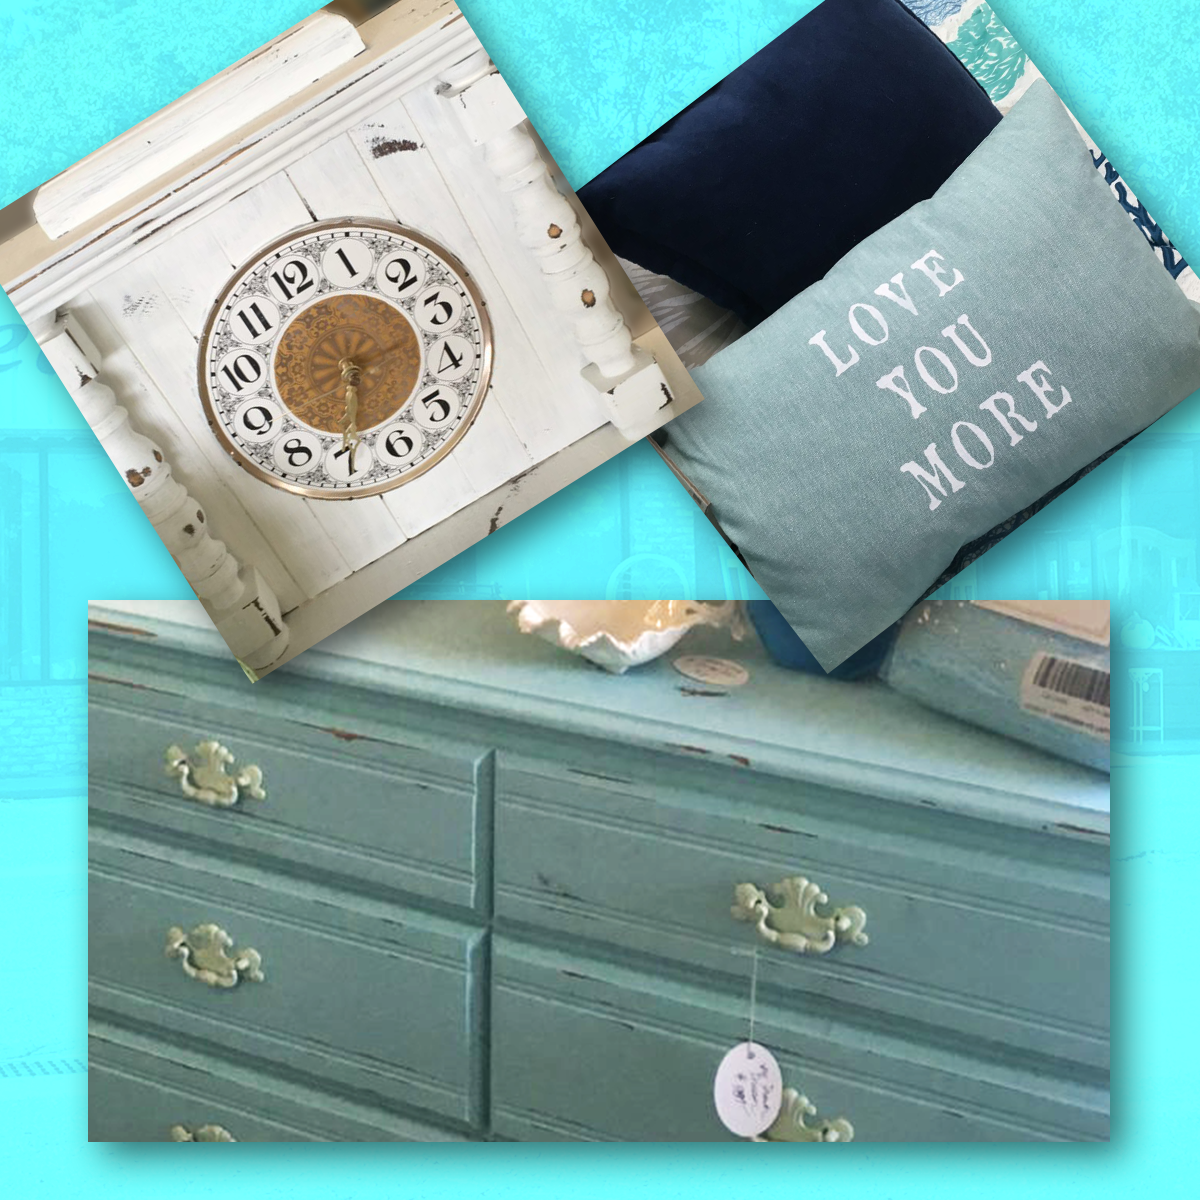 Weasel S Warehouse In Murrells Inlet Sc Offers Beautiful Shabby Chic Furniture Created By